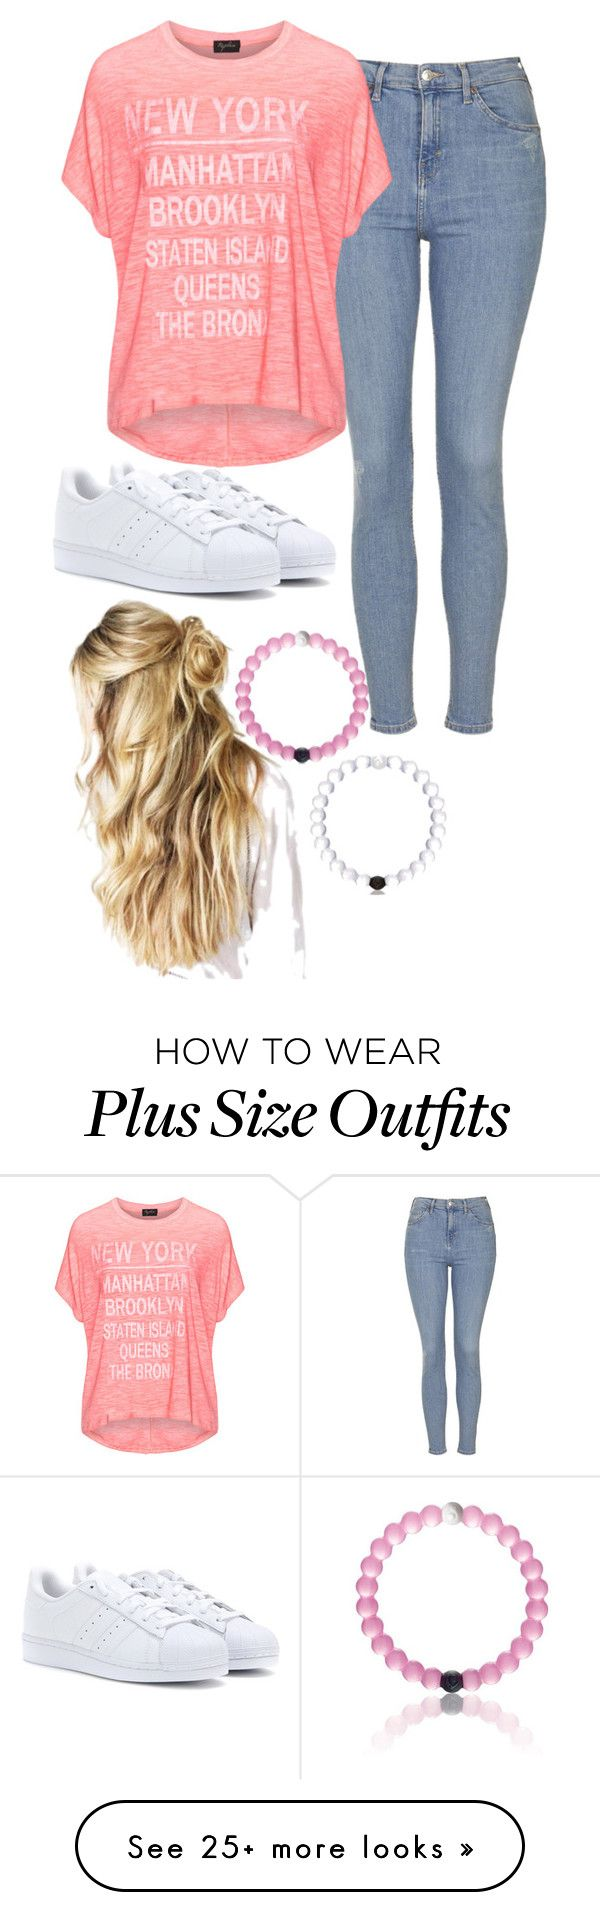 """""""quick & cute saturday outfit"""" by basic-penguin on Polyvore featuring Topshop, Replace, adidas, women's clothing, women, female, woman, misses and juniors"""